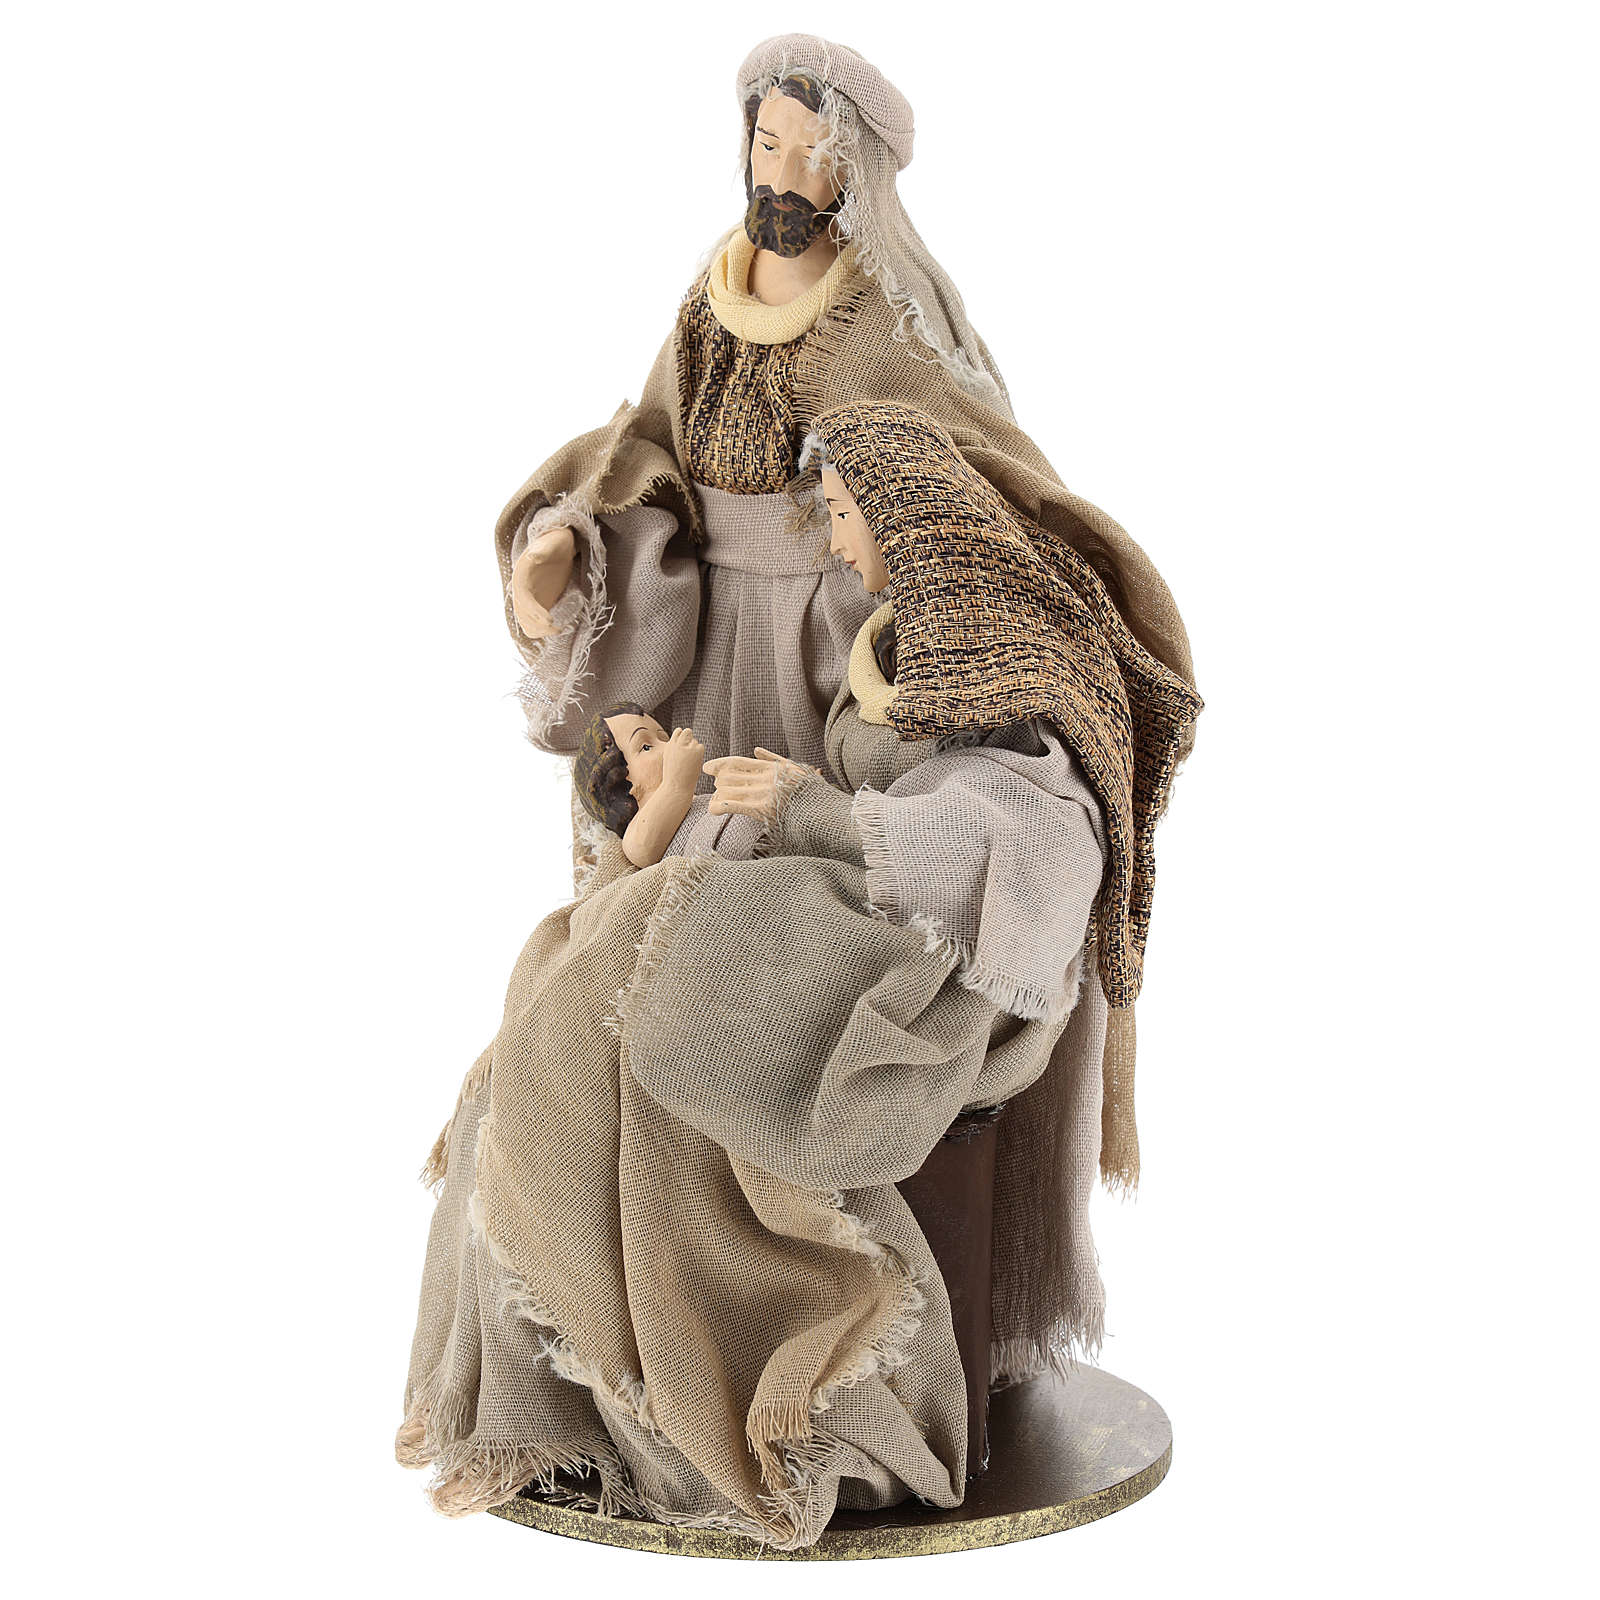 Nativity in resin 30 cm Shabby Chic style with gauze clothes in shades of beige 3